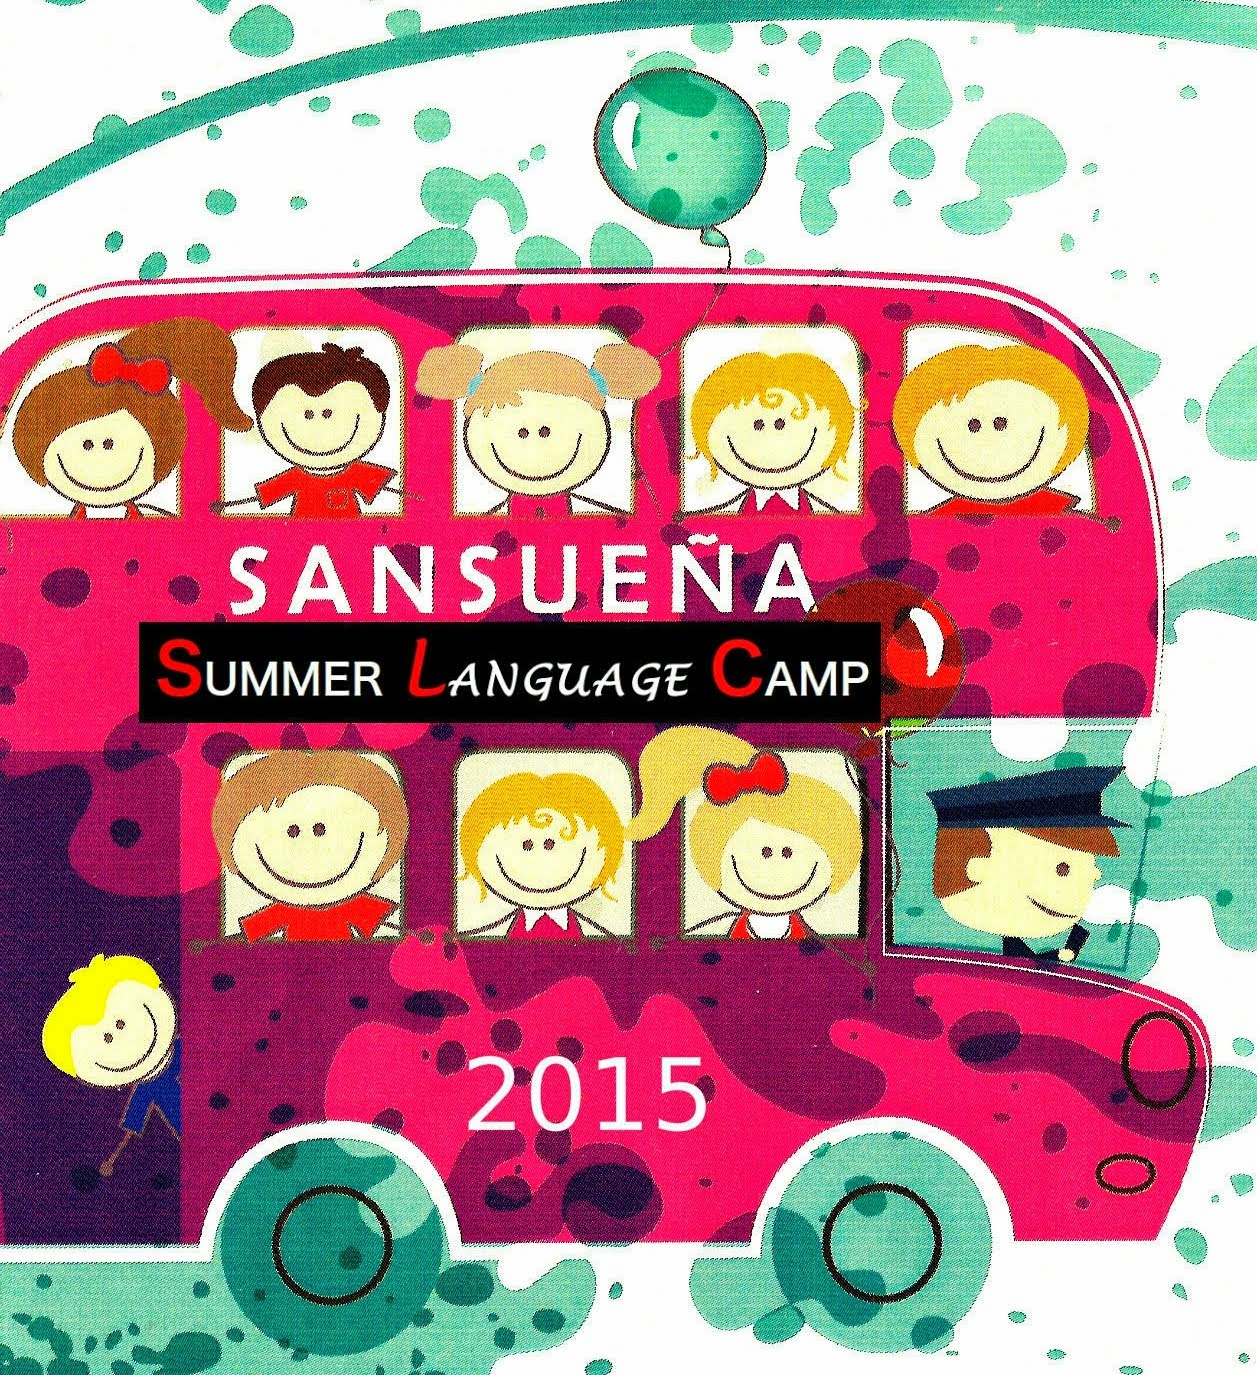 SUMMER LANGUAGE CAMP